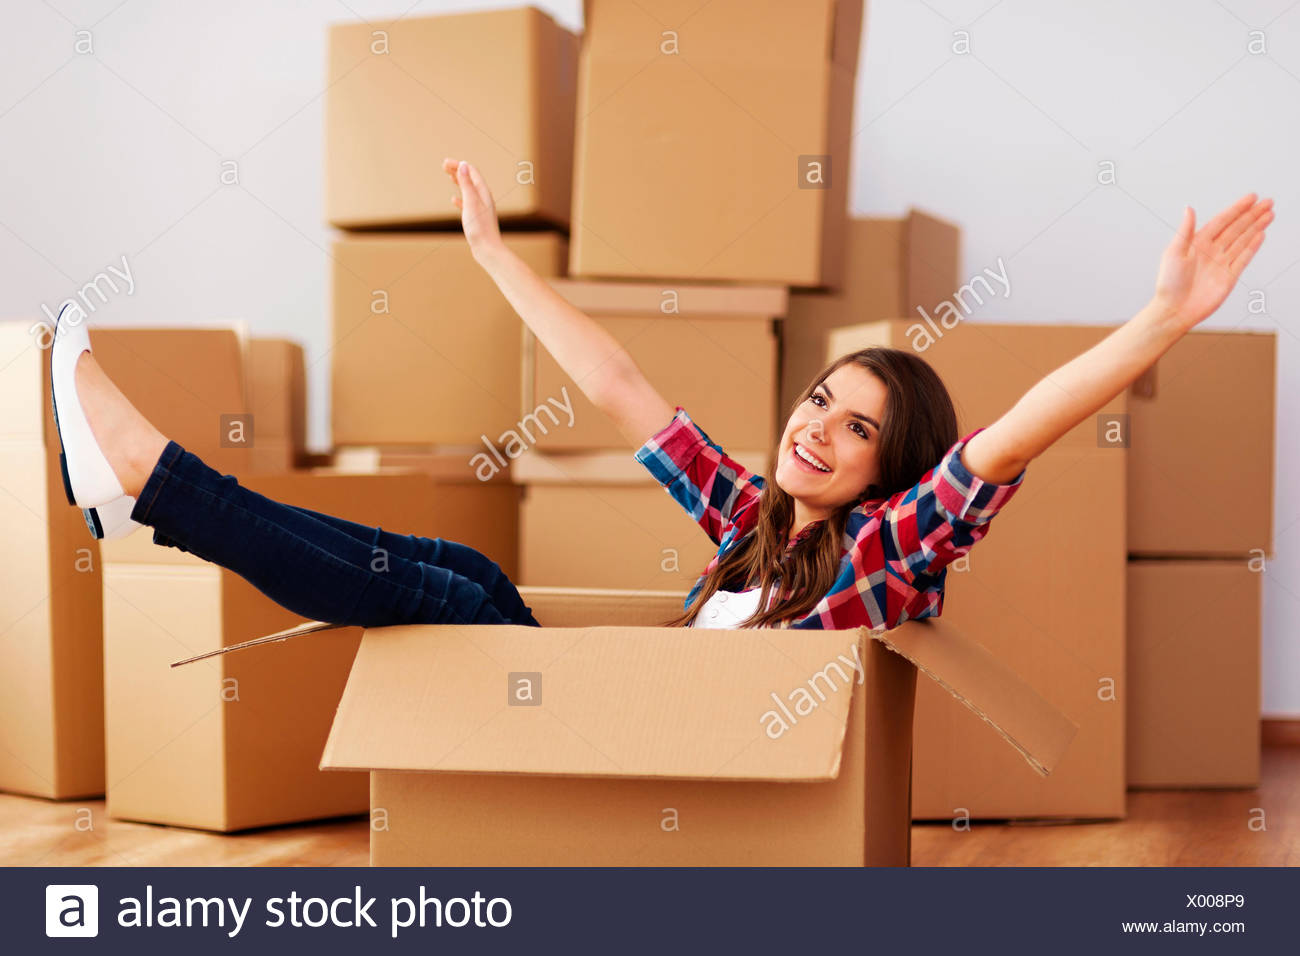 Cheerful woman sitting in a cardboard box Debica, Poland - Stock Image